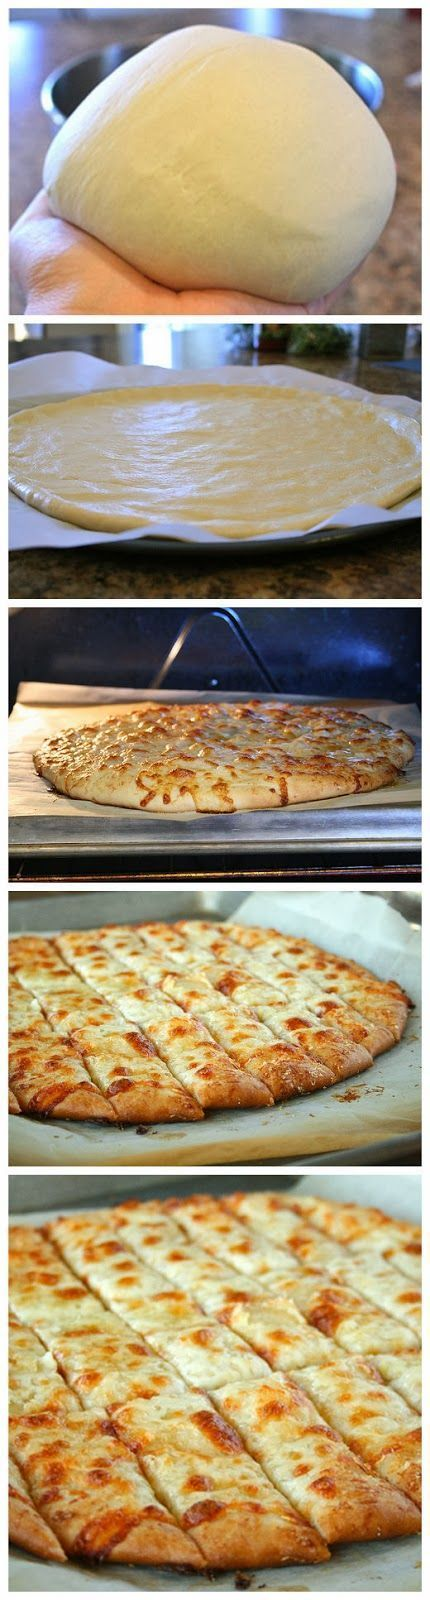 Fail-Proof Pizza Dough and Cheesy Garlic Bread Sticks                                                                                                                                                      More